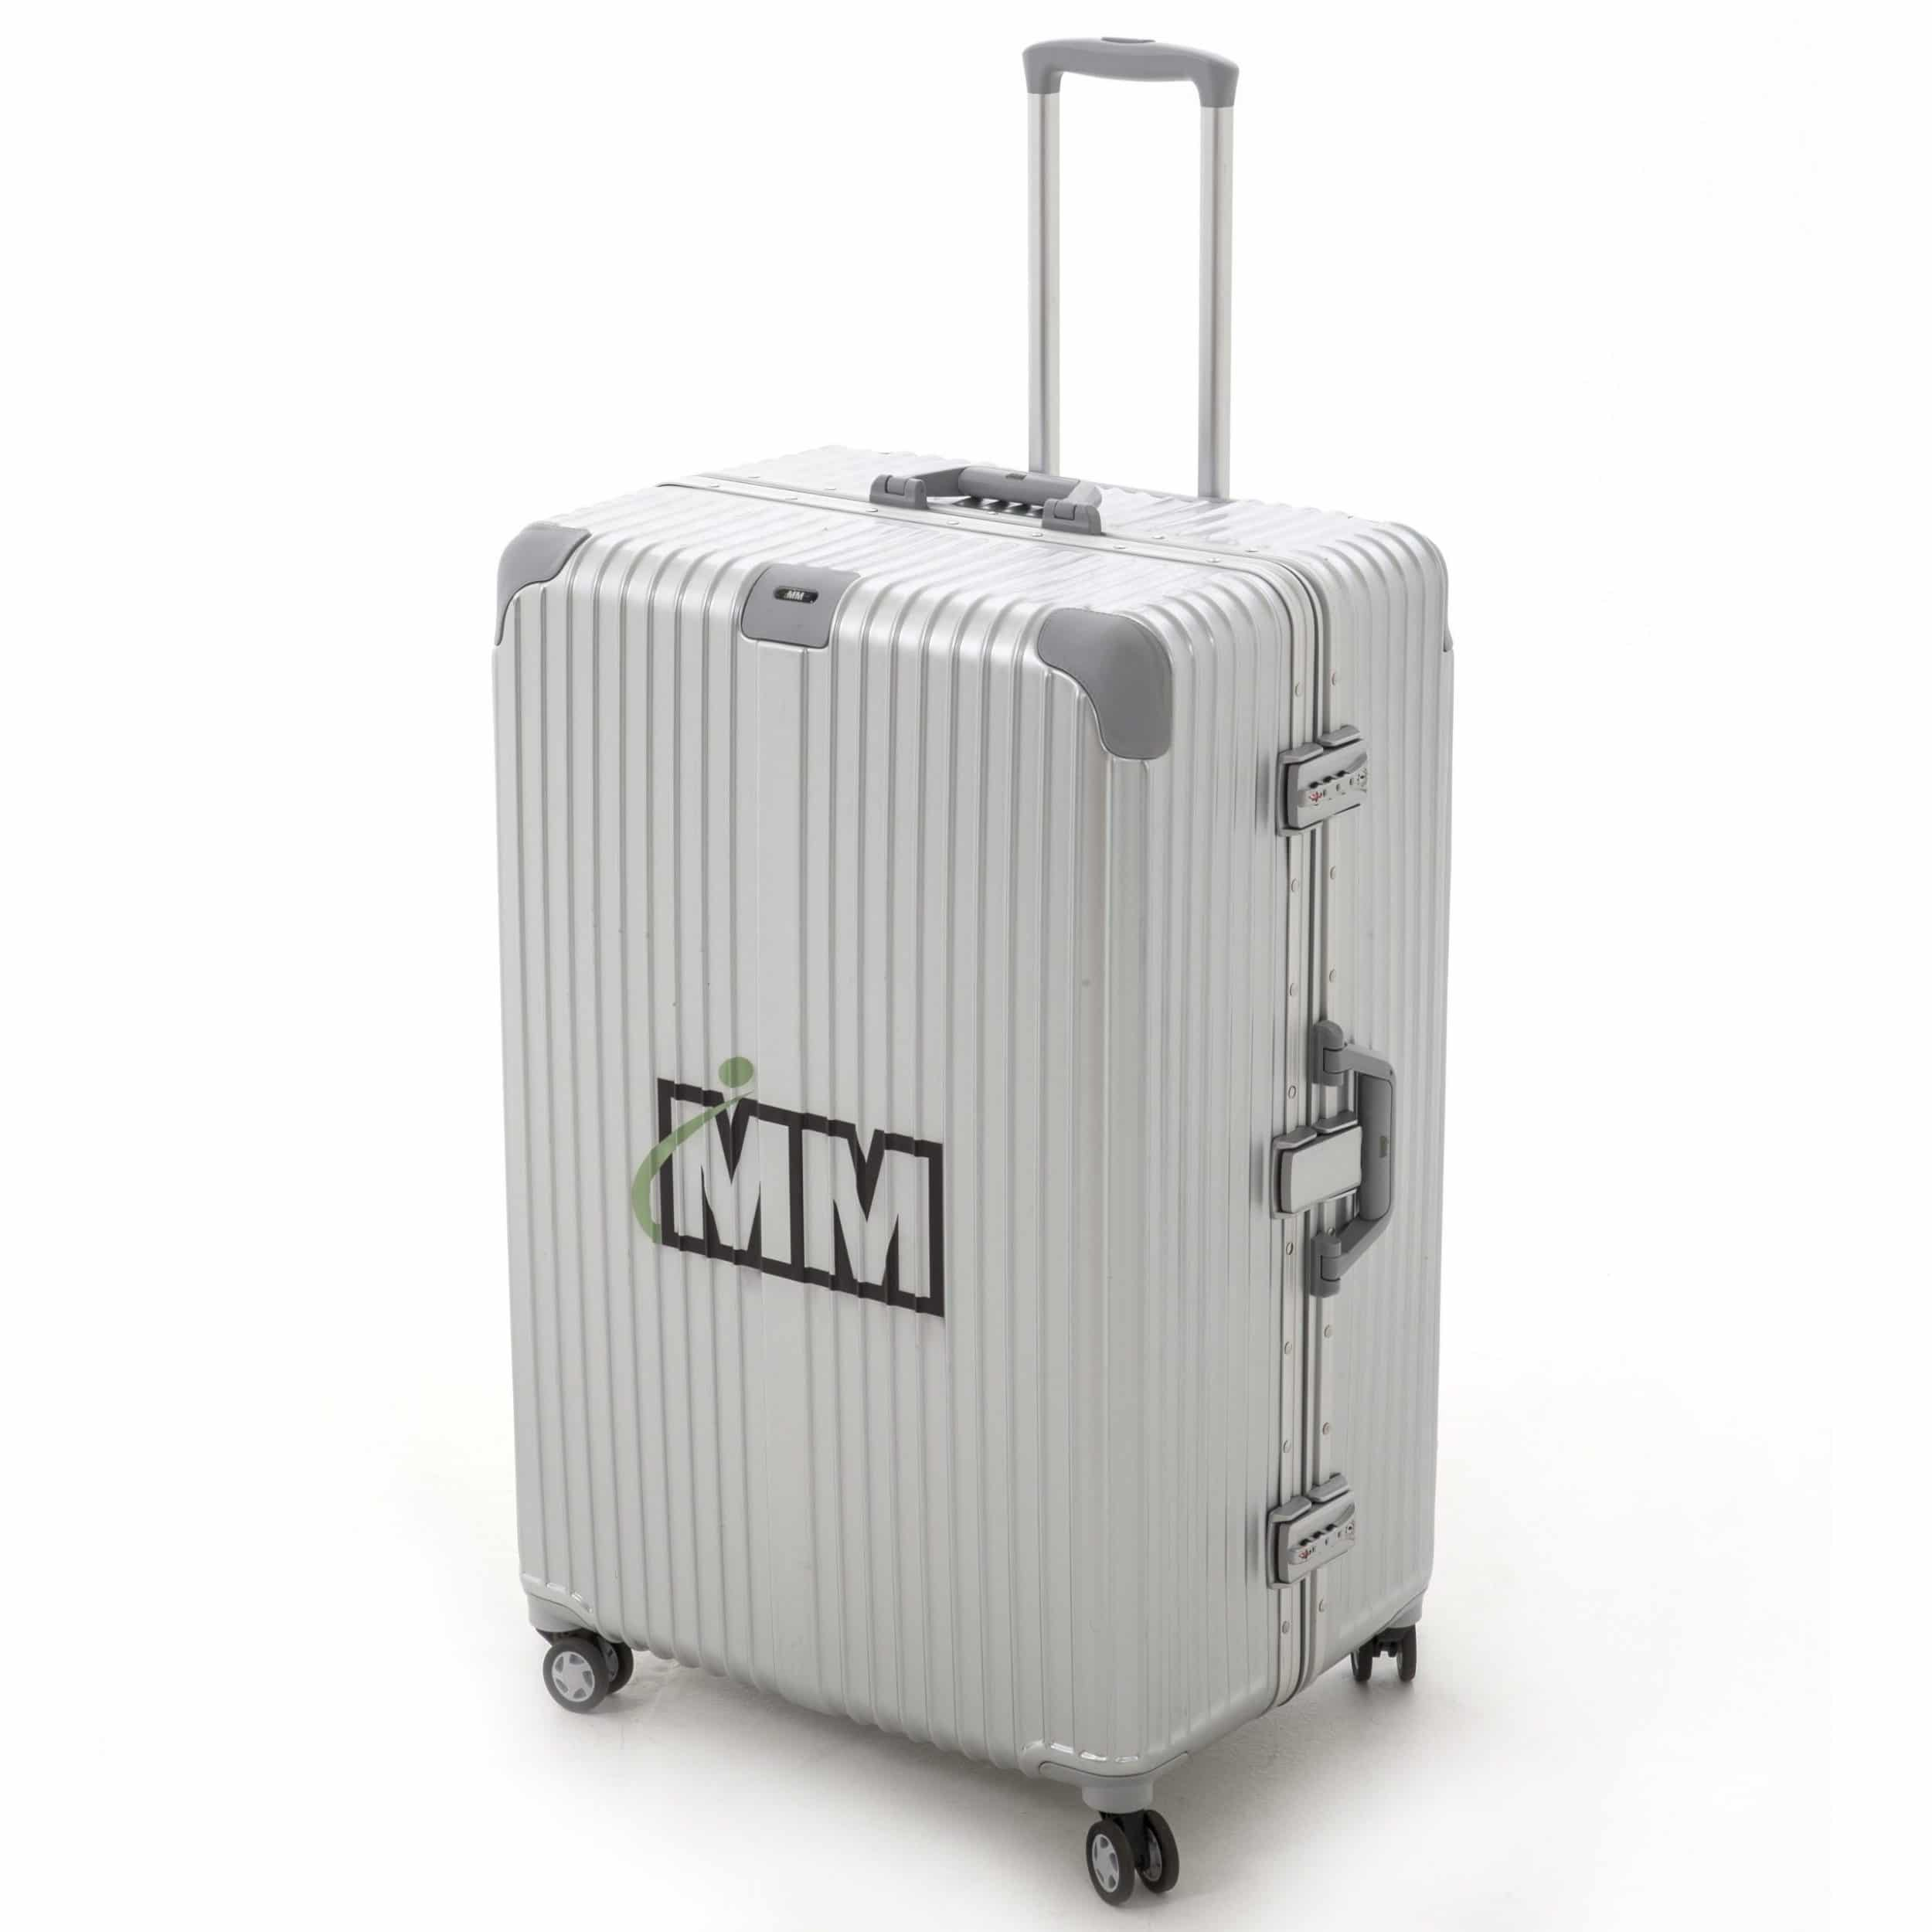 Mobility Scooter Hard Travel Case | Monarch Mobility 0800 002 9633